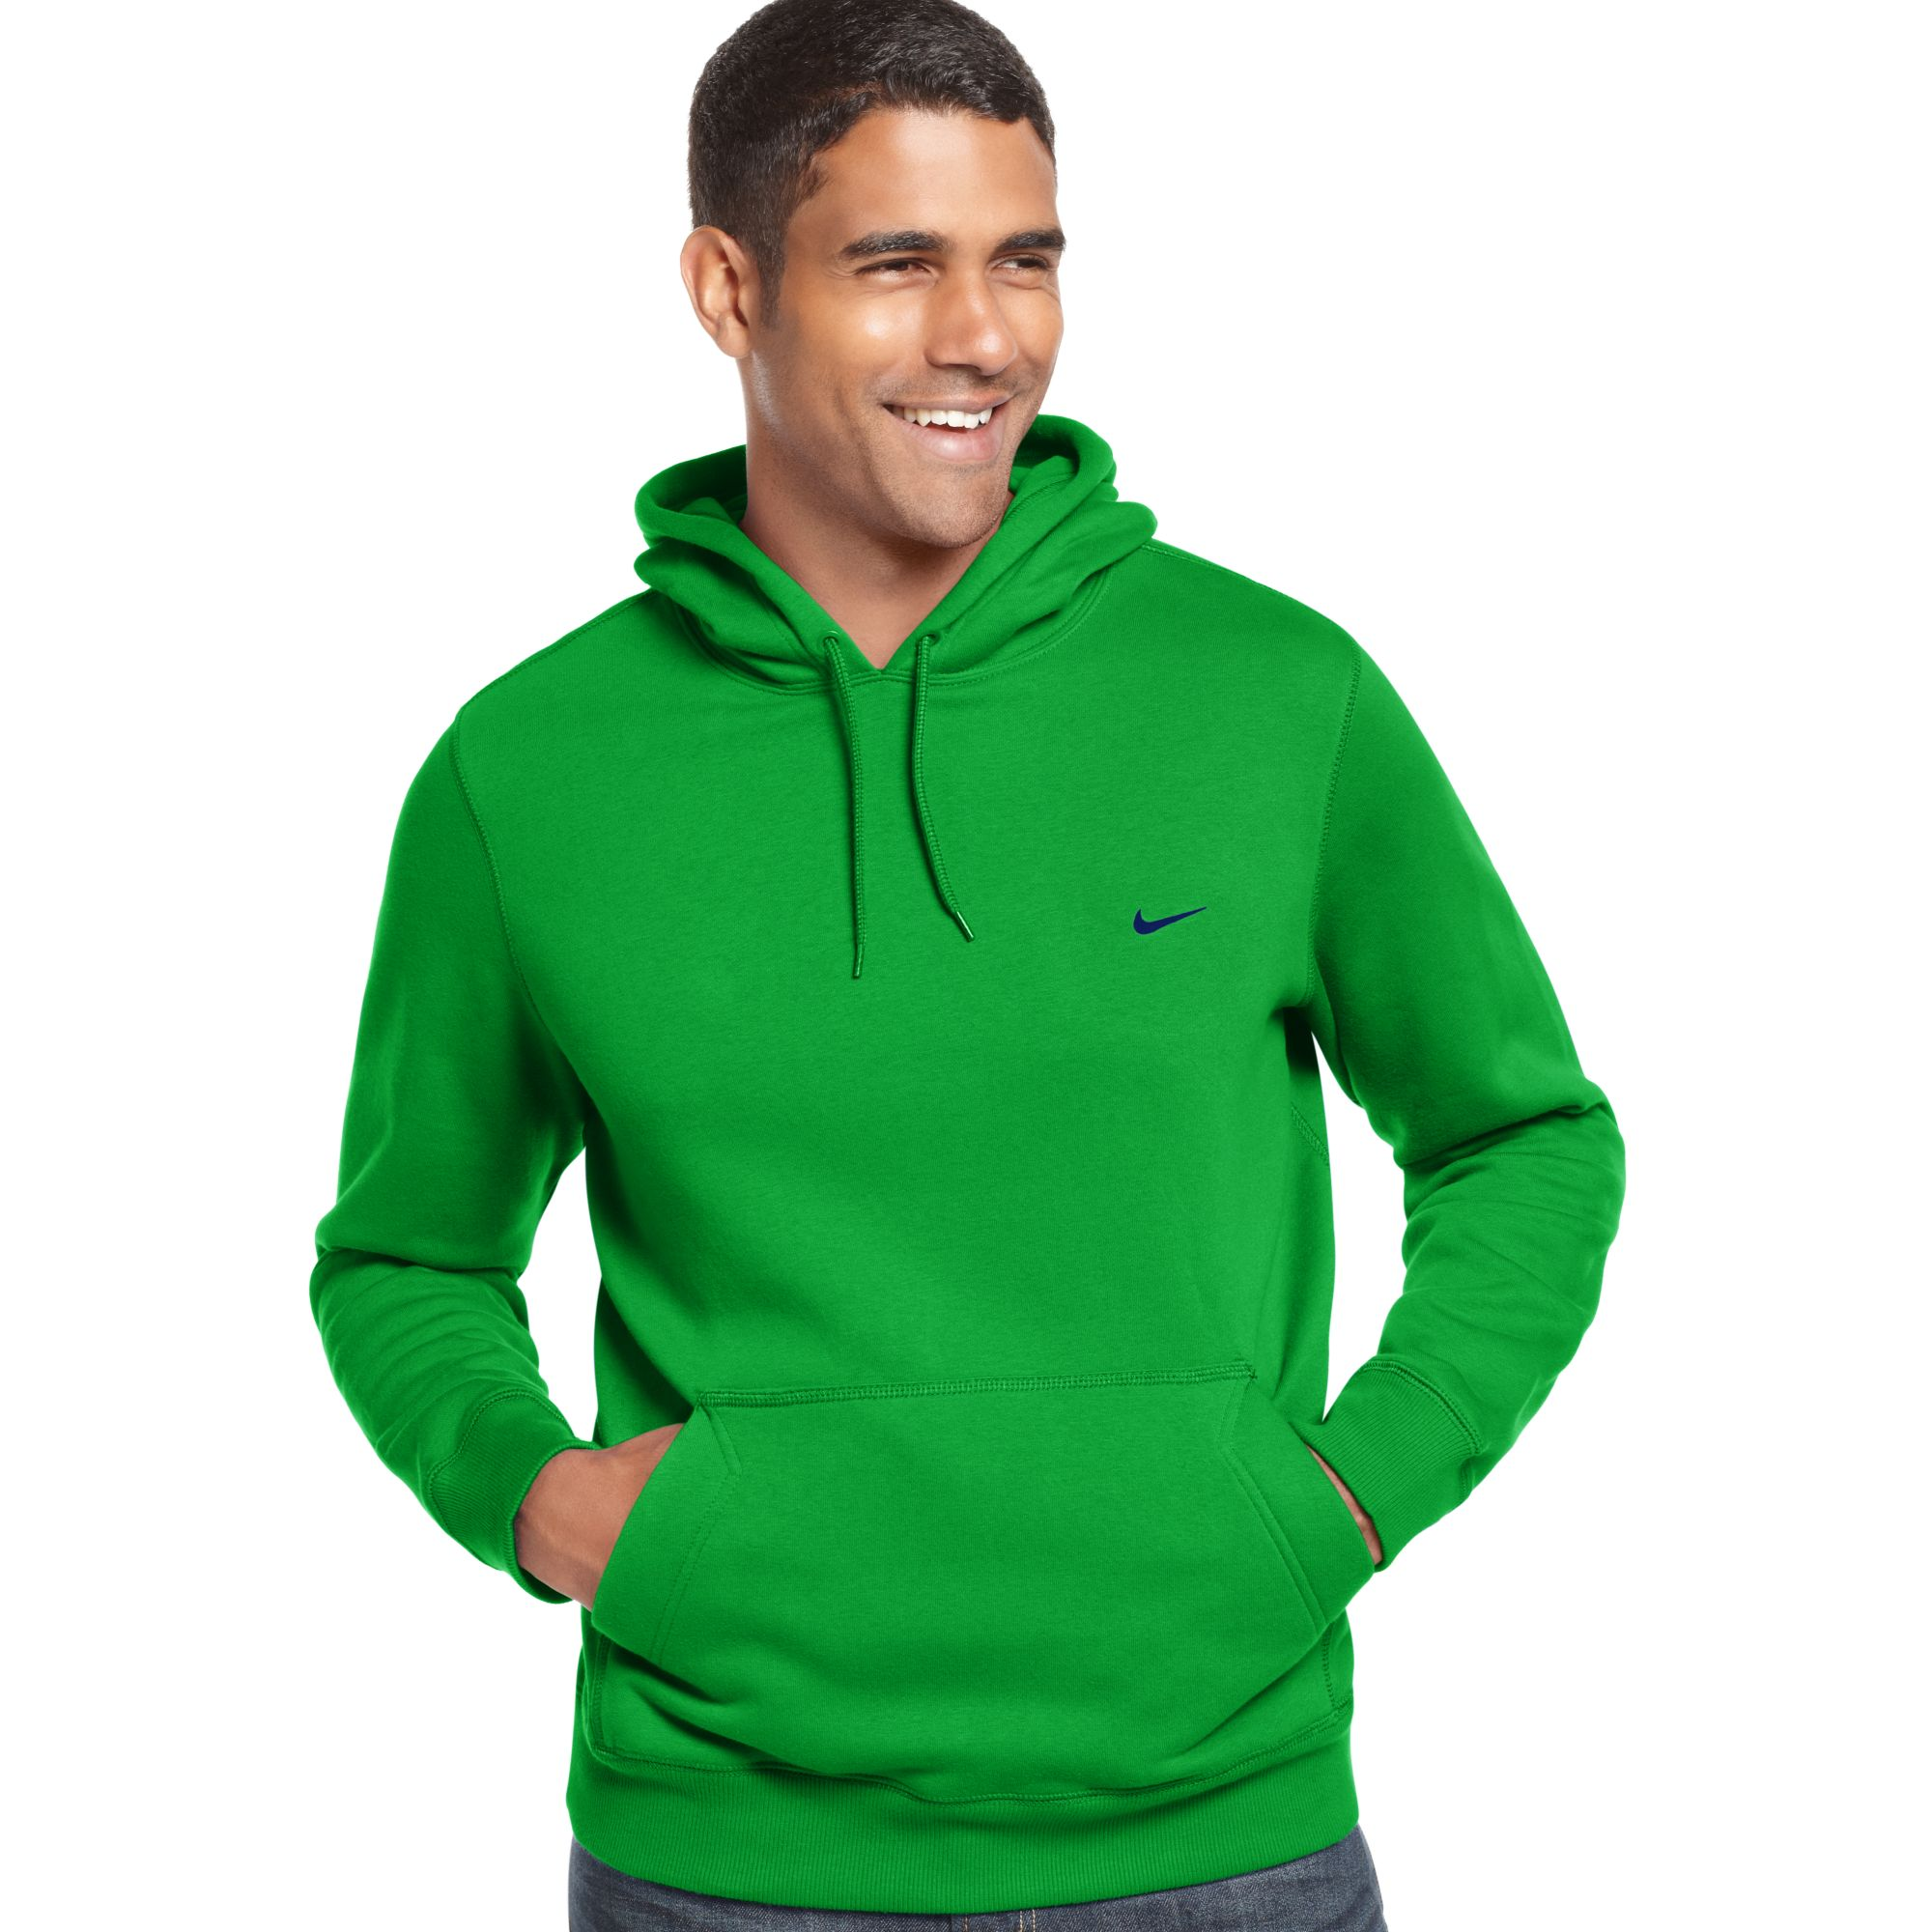 nike classic pullover fleece hoodie in green for men. Black Bedroom Furniture Sets. Home Design Ideas